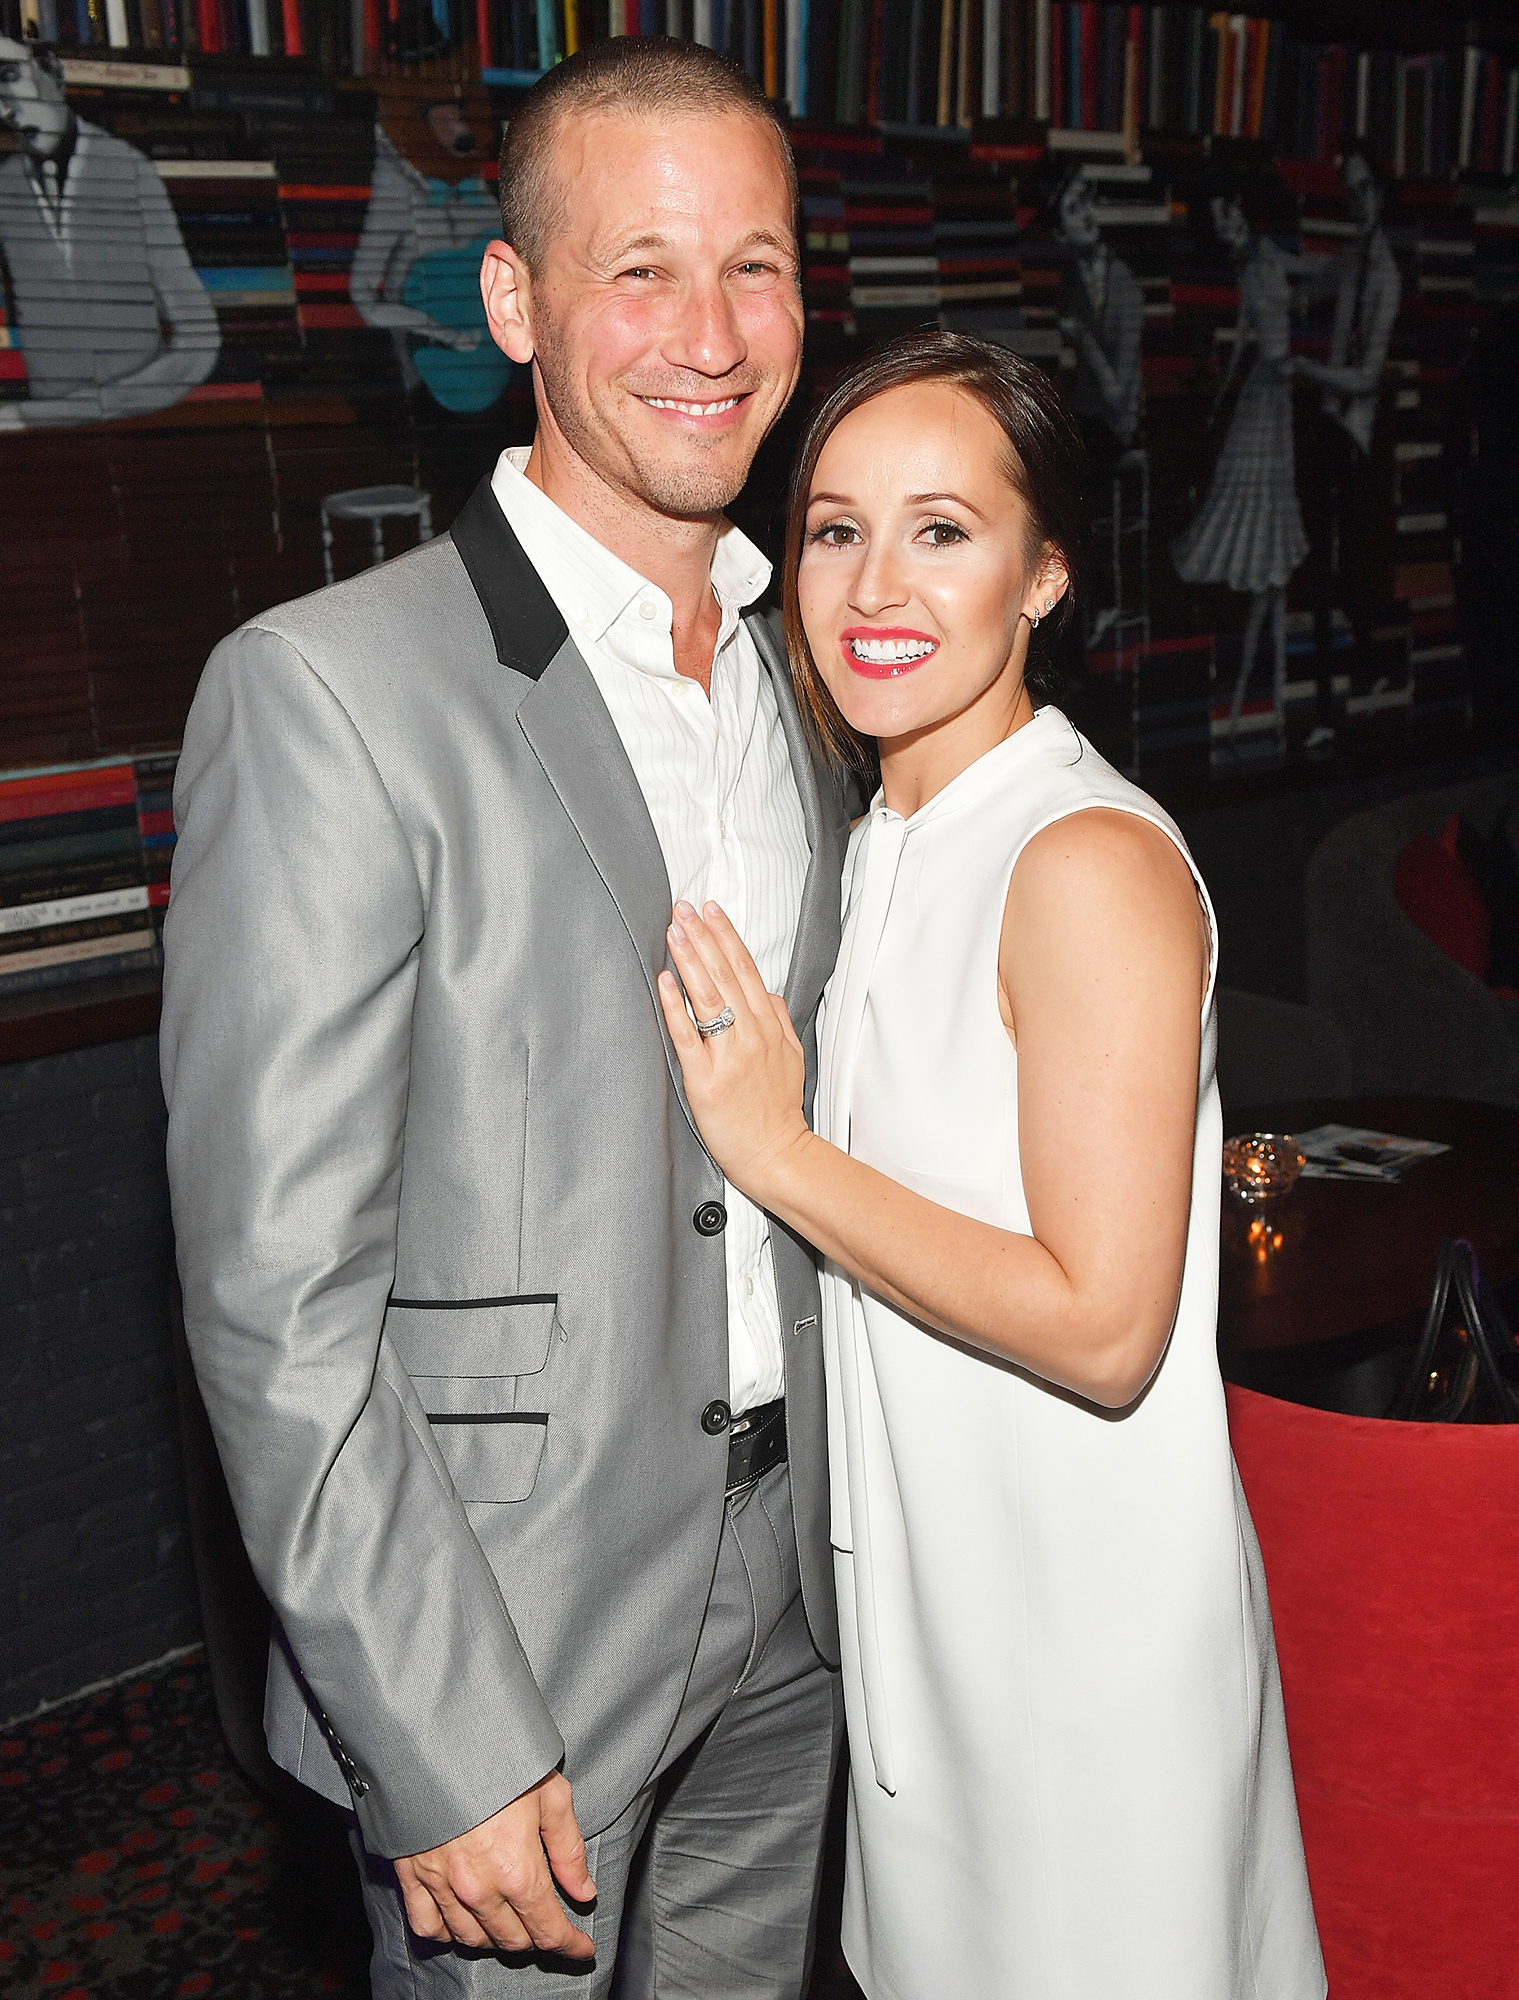 JP Rosenbaum Ashley Hebert Bachelor Relationship Still Strong